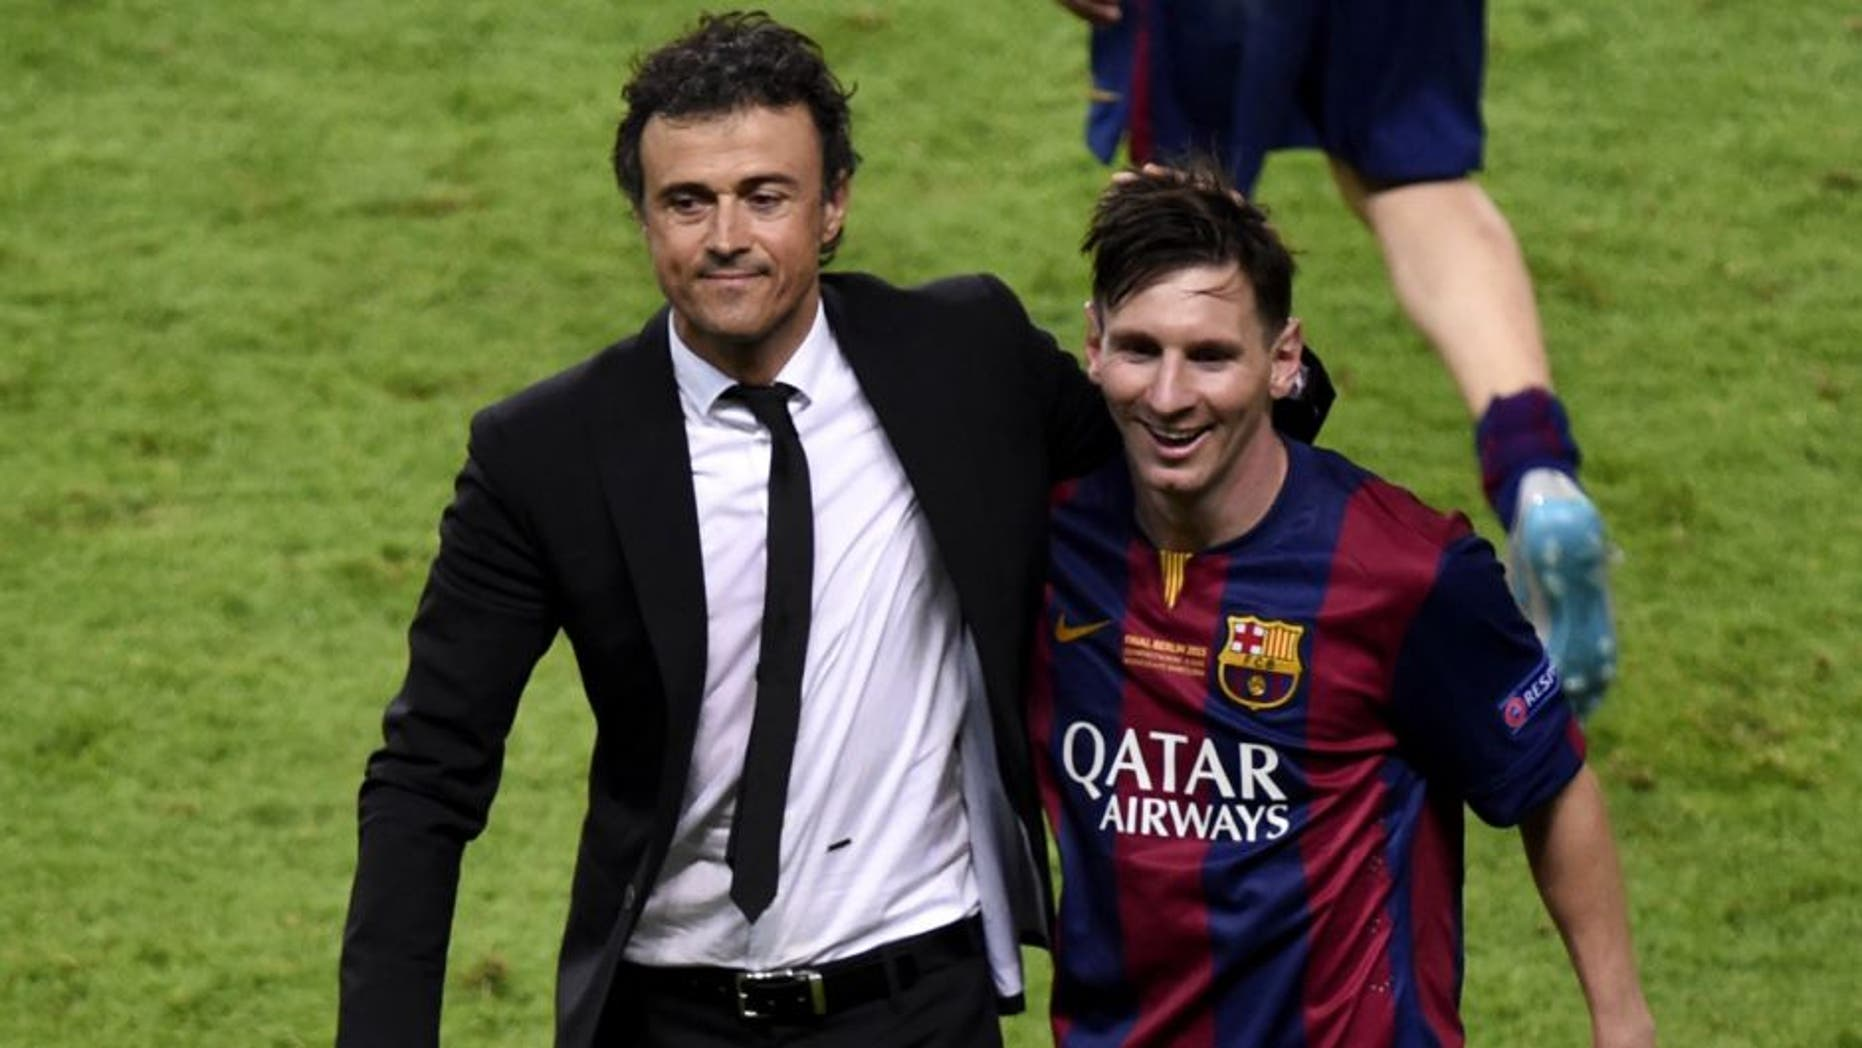 Barcelona's coach Luis Enrique and Barcelona's Argentinian forward Lionel Messi (R) celebrate after winning the UEFA Champions League Final football match between Juventus and FC Barcelona at the Olympic Stadium in Berlin on June 6, 2015. AFP PHOTO / ODD ANDERSEN (Photo credit should read ODD ANDERSEN/AFP/Getty Images)